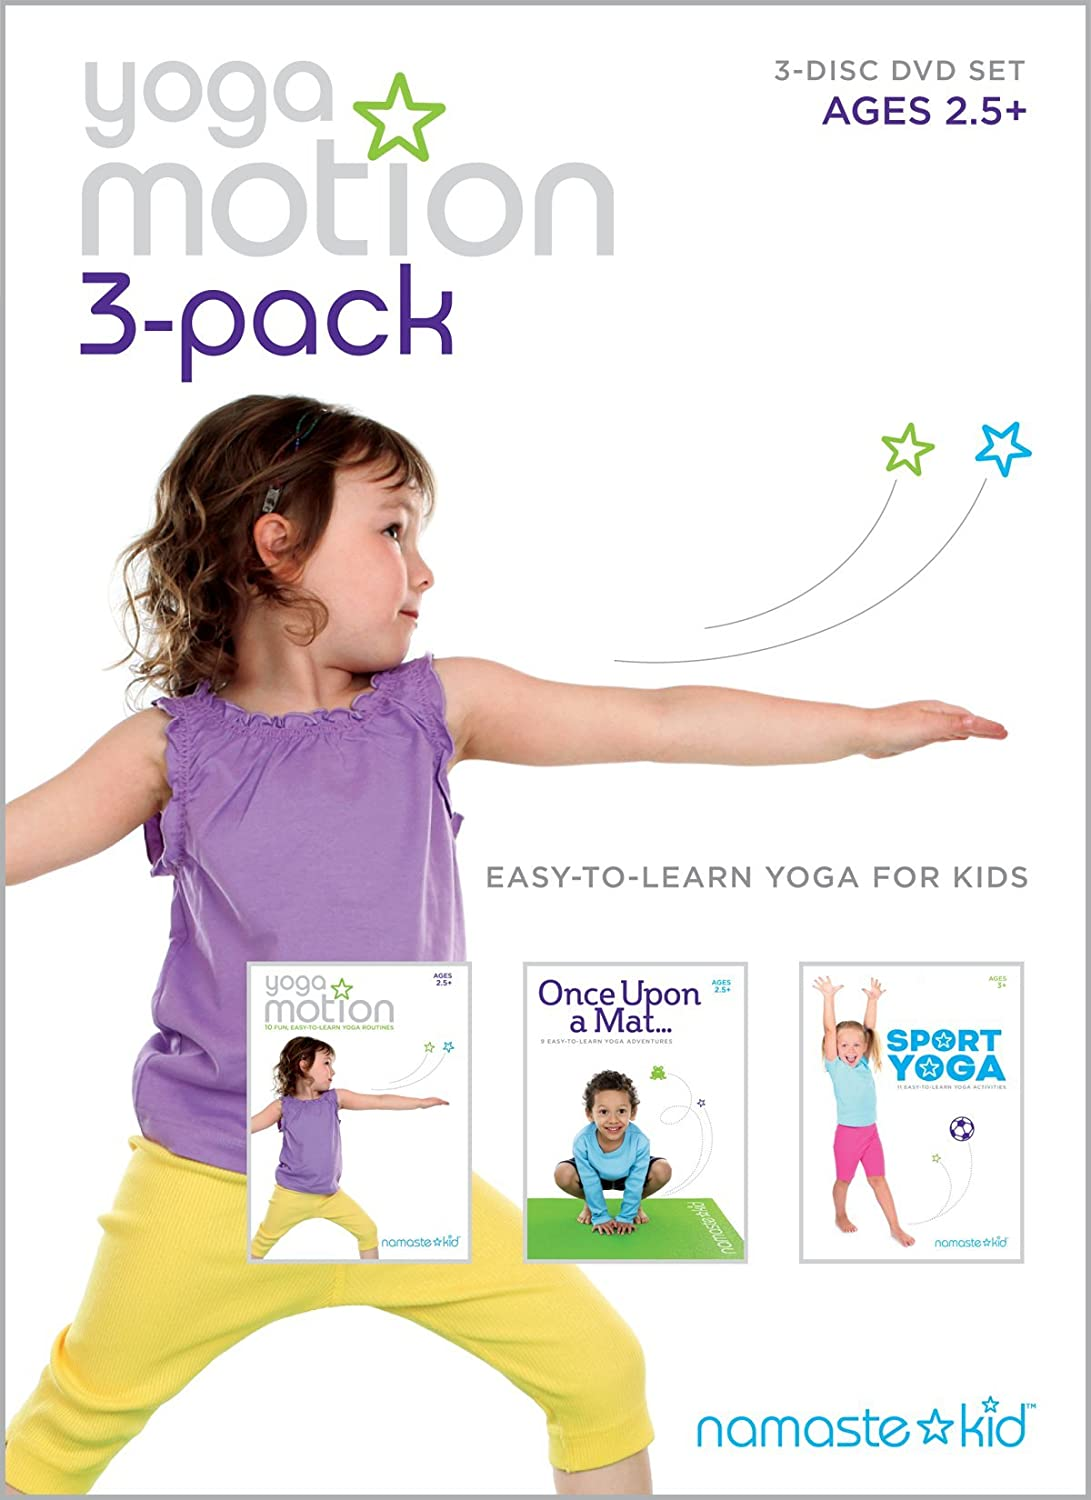 Yoga Motion 3-pack - Kids Yoga DVD 3-disc Set: Amazon.es ...